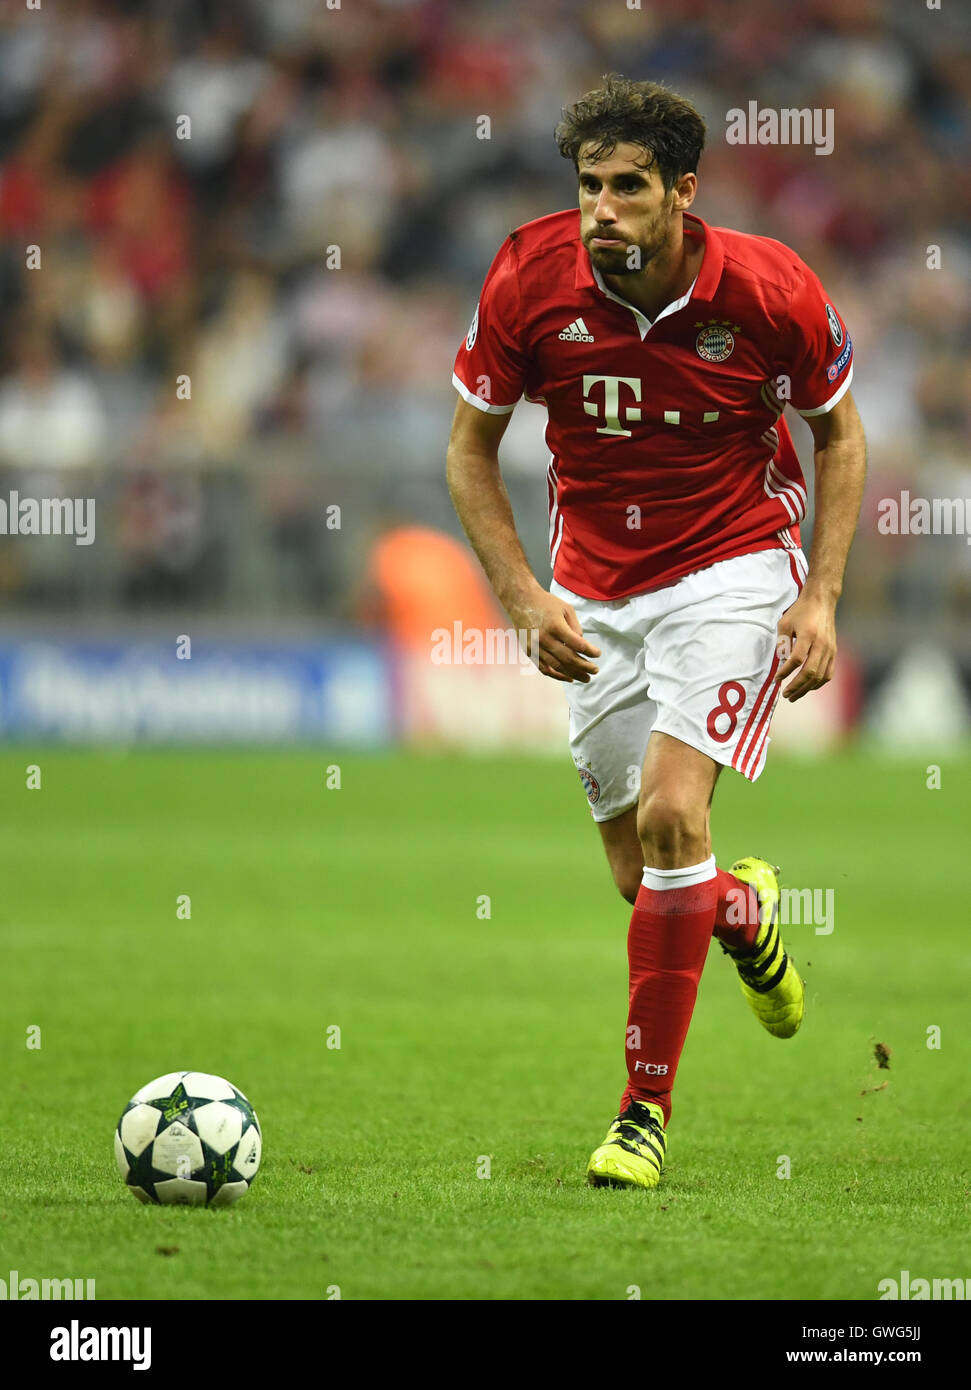 Javi Martinez of Bayern Munich in action during the Champions